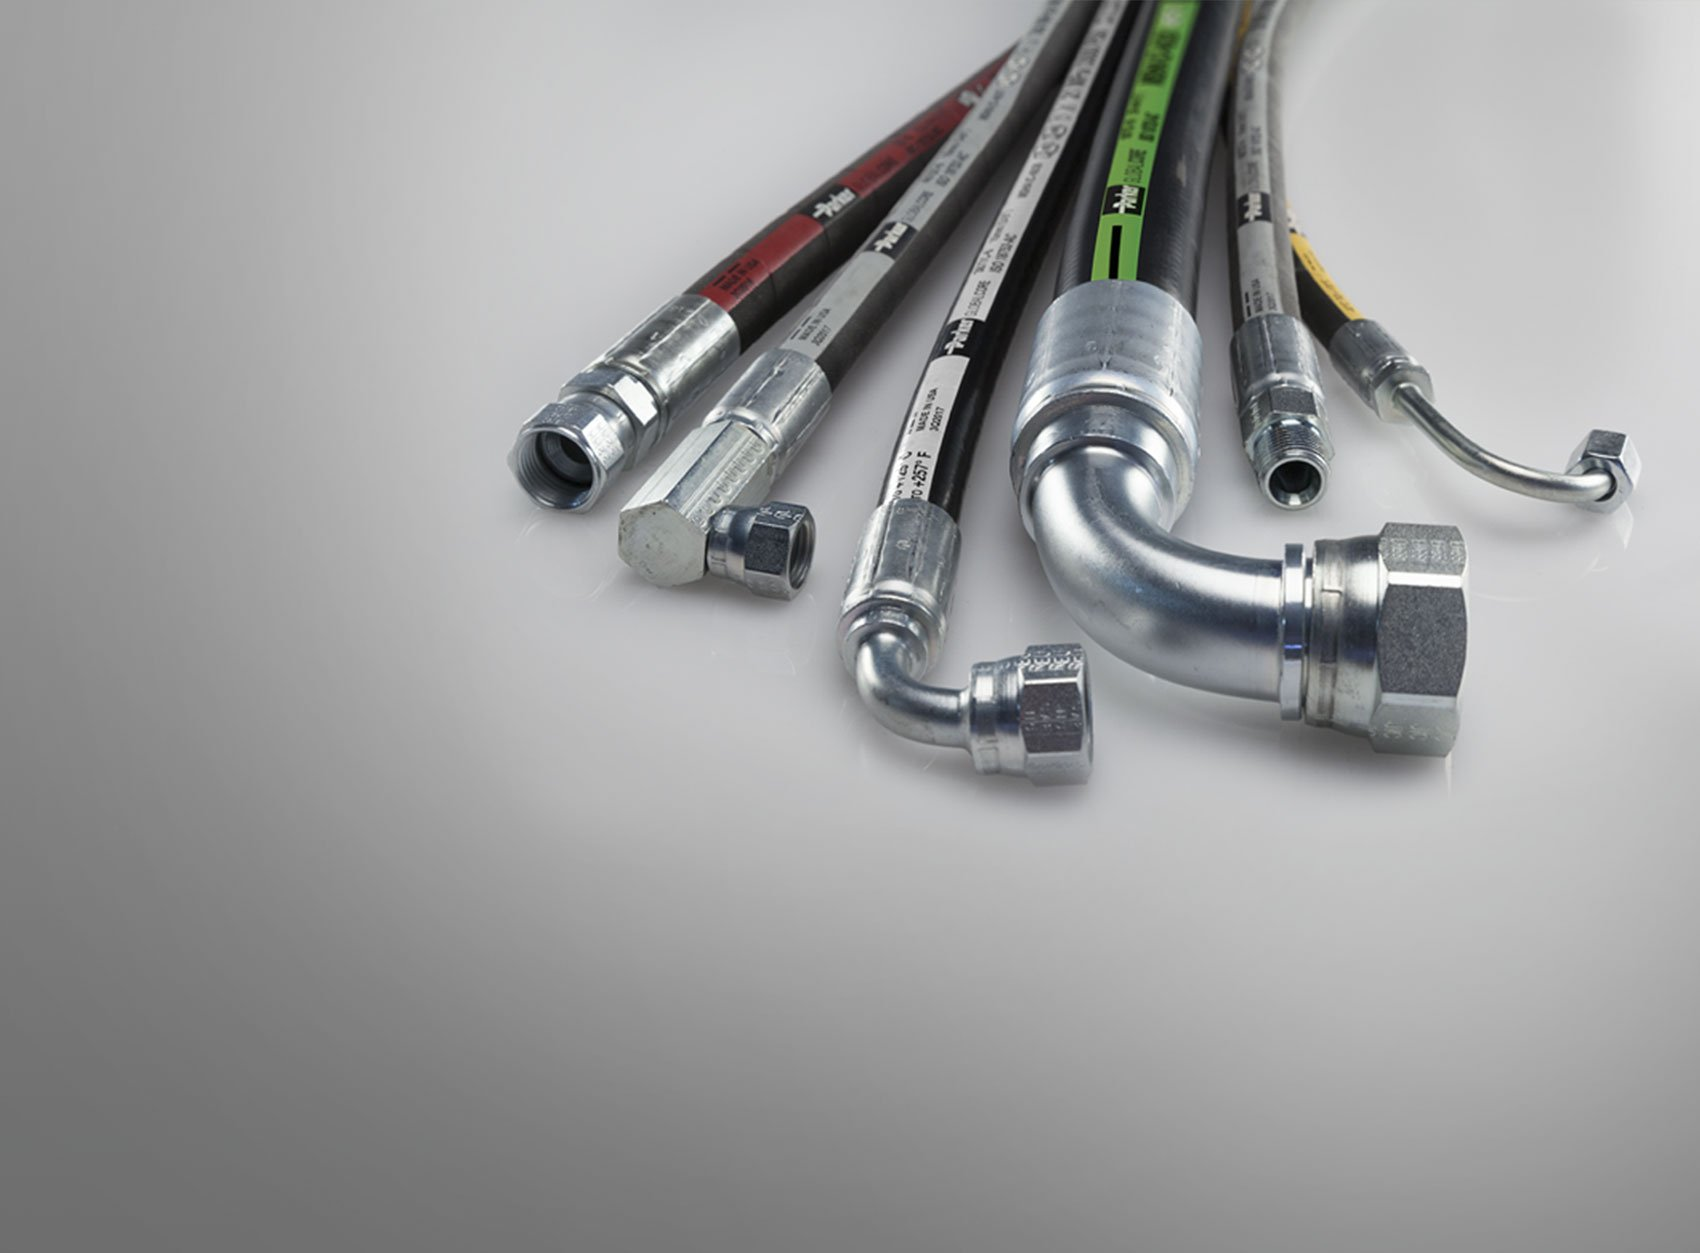 We make hoses! Fast replacement of hydraulic hose assemblies while you wait. Call 800-441-8195.